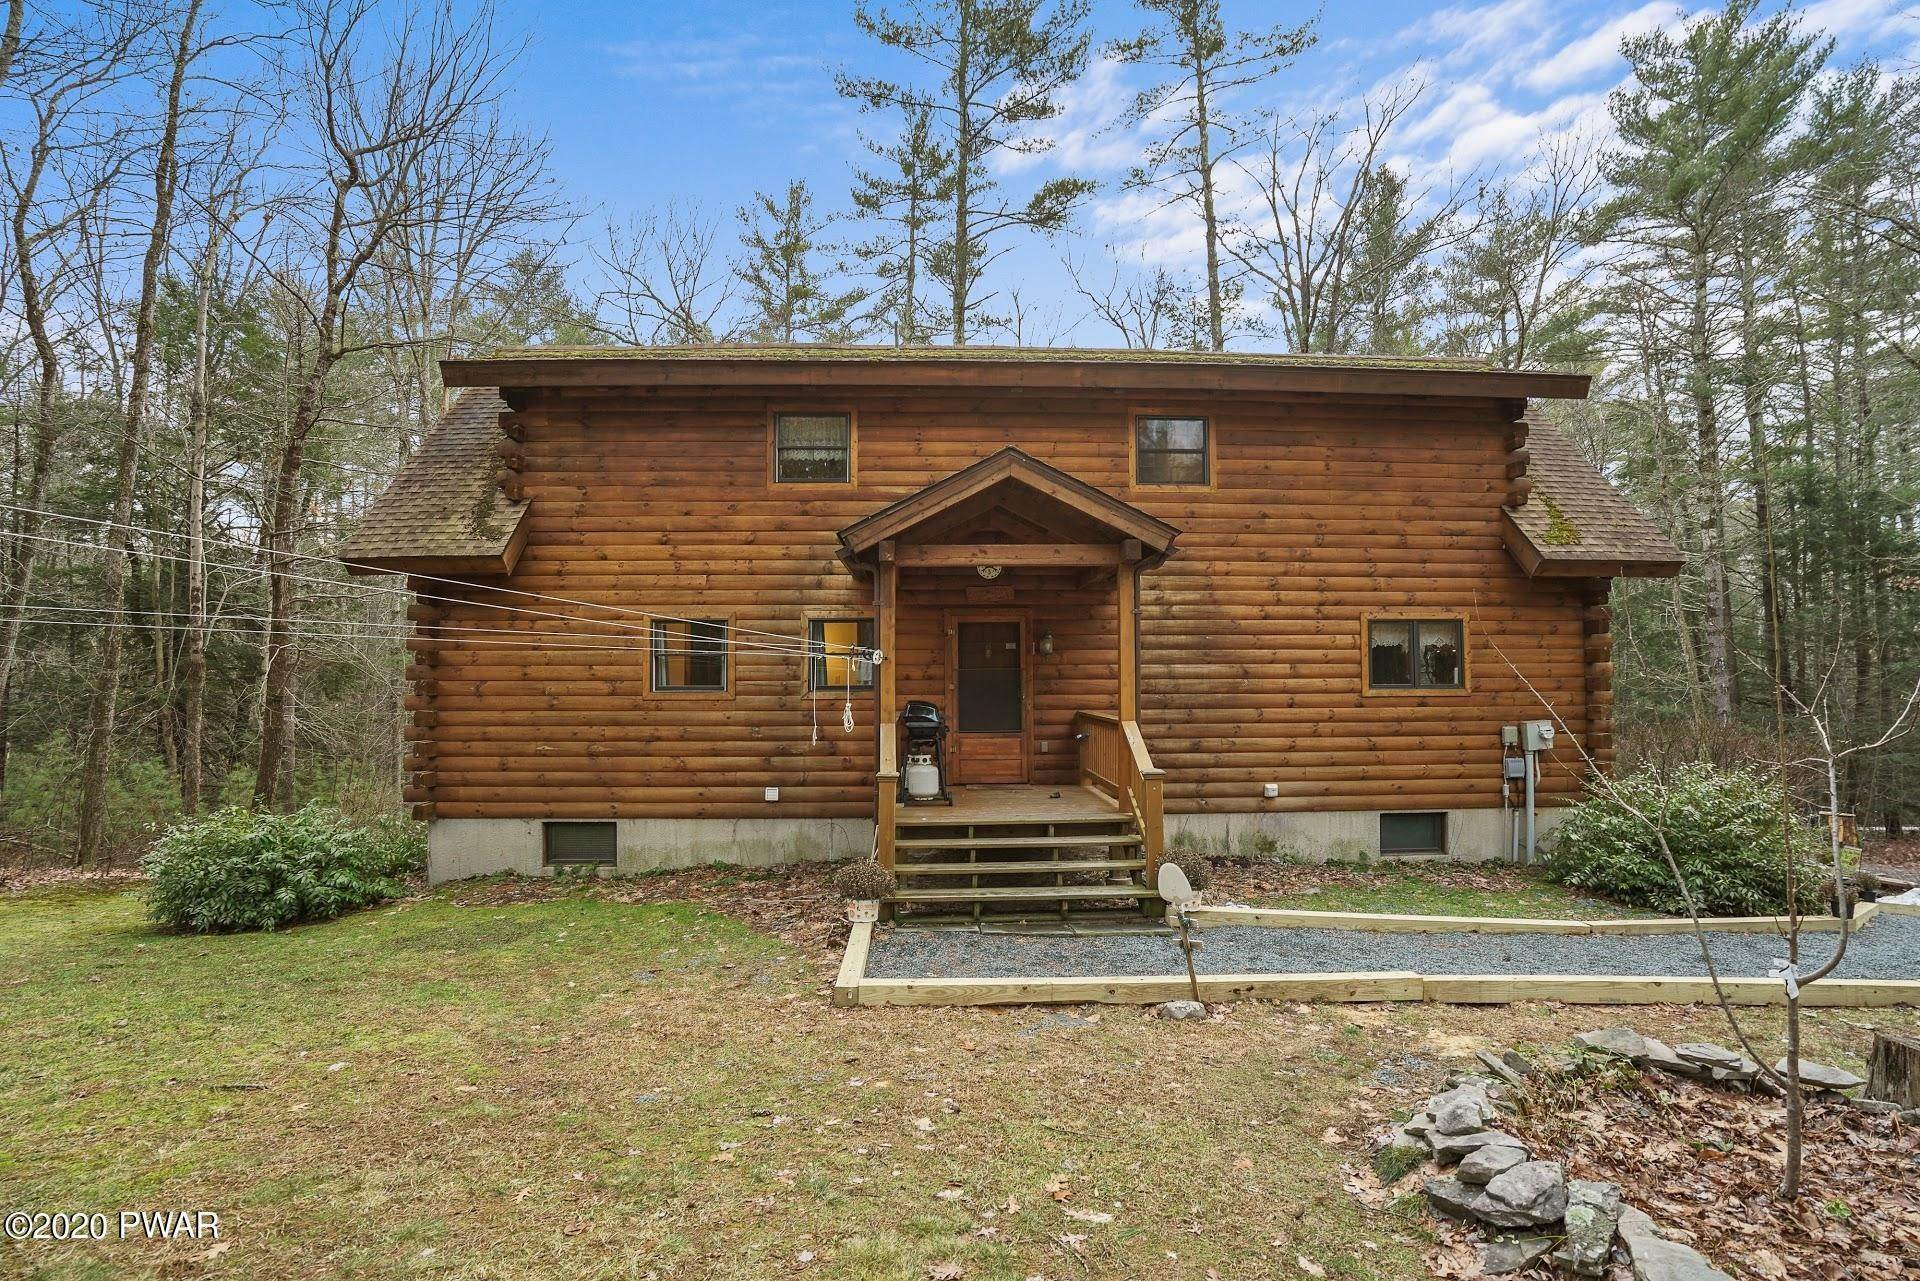 32. Single Family Homes for Sale at 163 Mckean Valley Rd Shohola, Pennsylvania 18458 United States